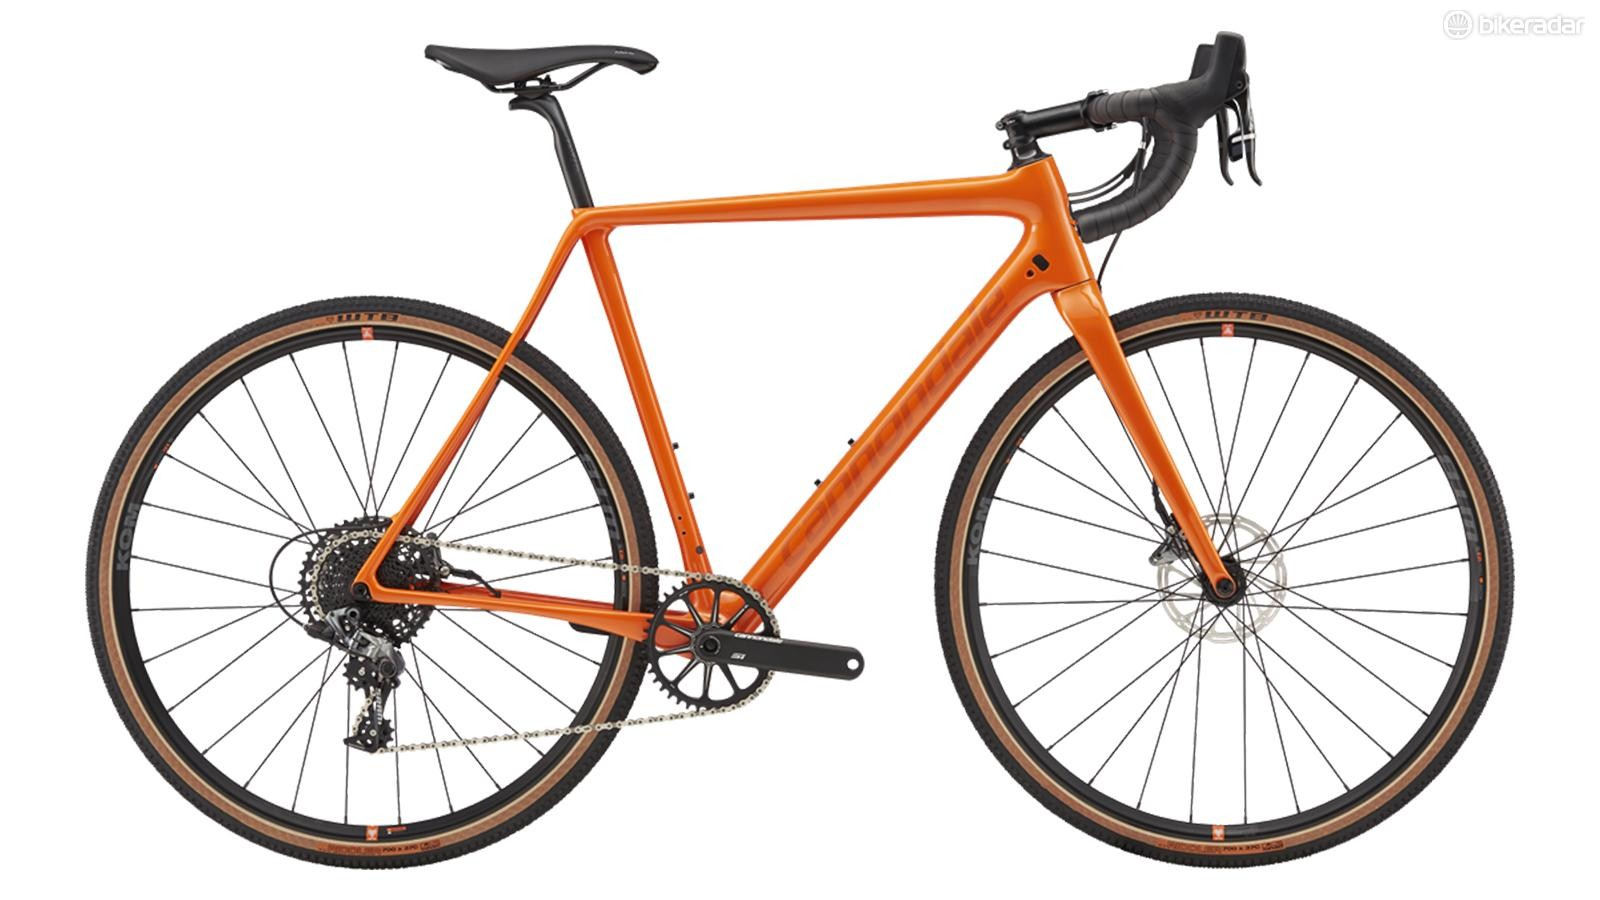 The Cannondale SuperX SE has fatter tires and a wider gear range than the standard CX race versions